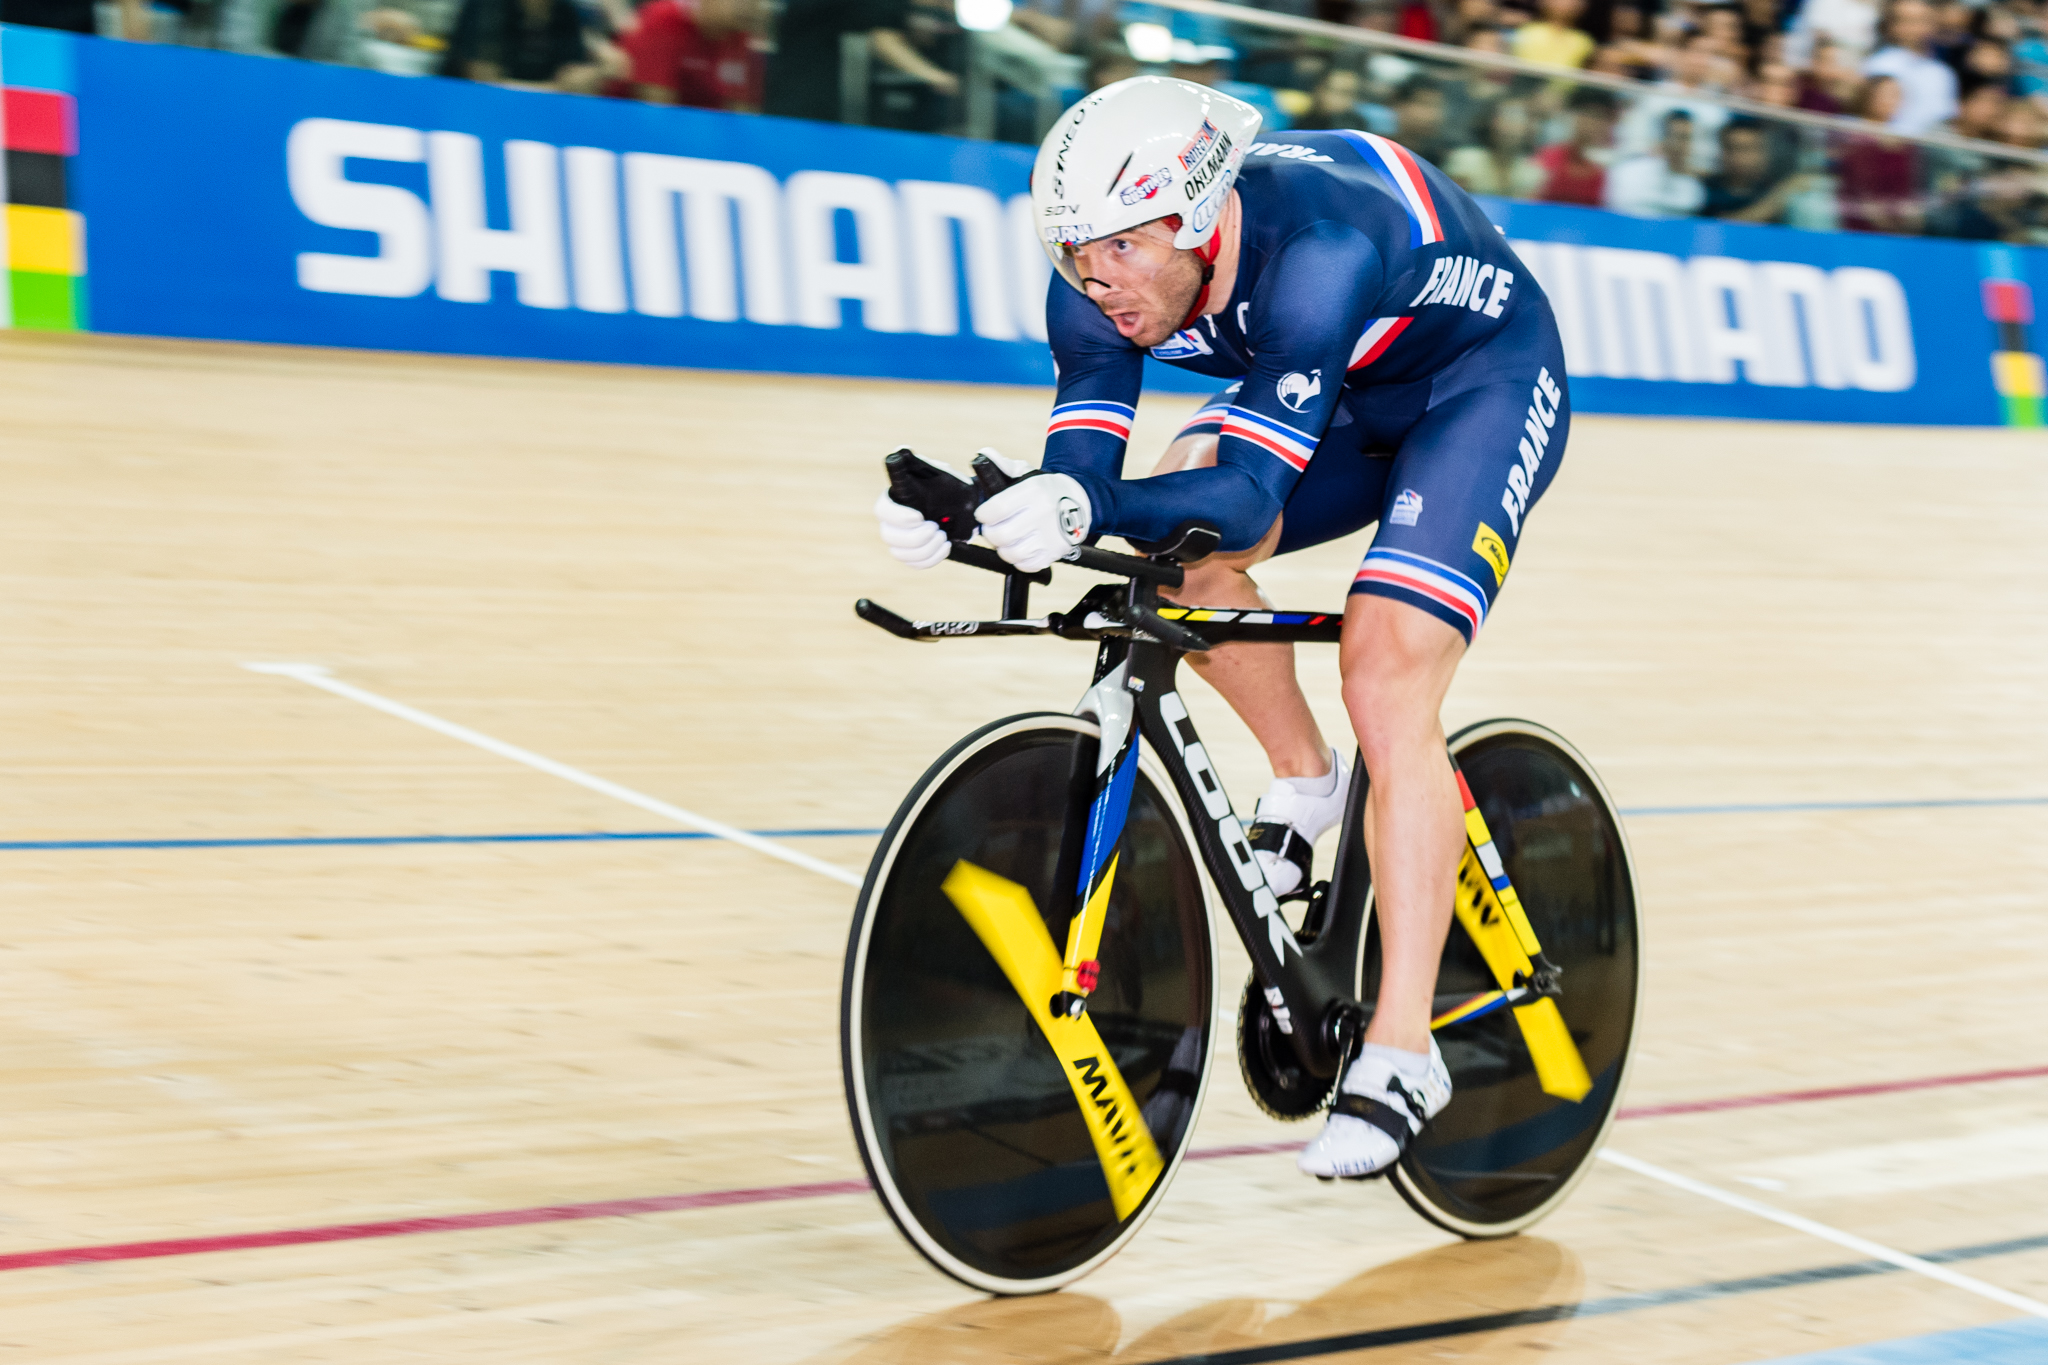 UCI Track Cycling World Championships 2017 – Day 5 Results ...